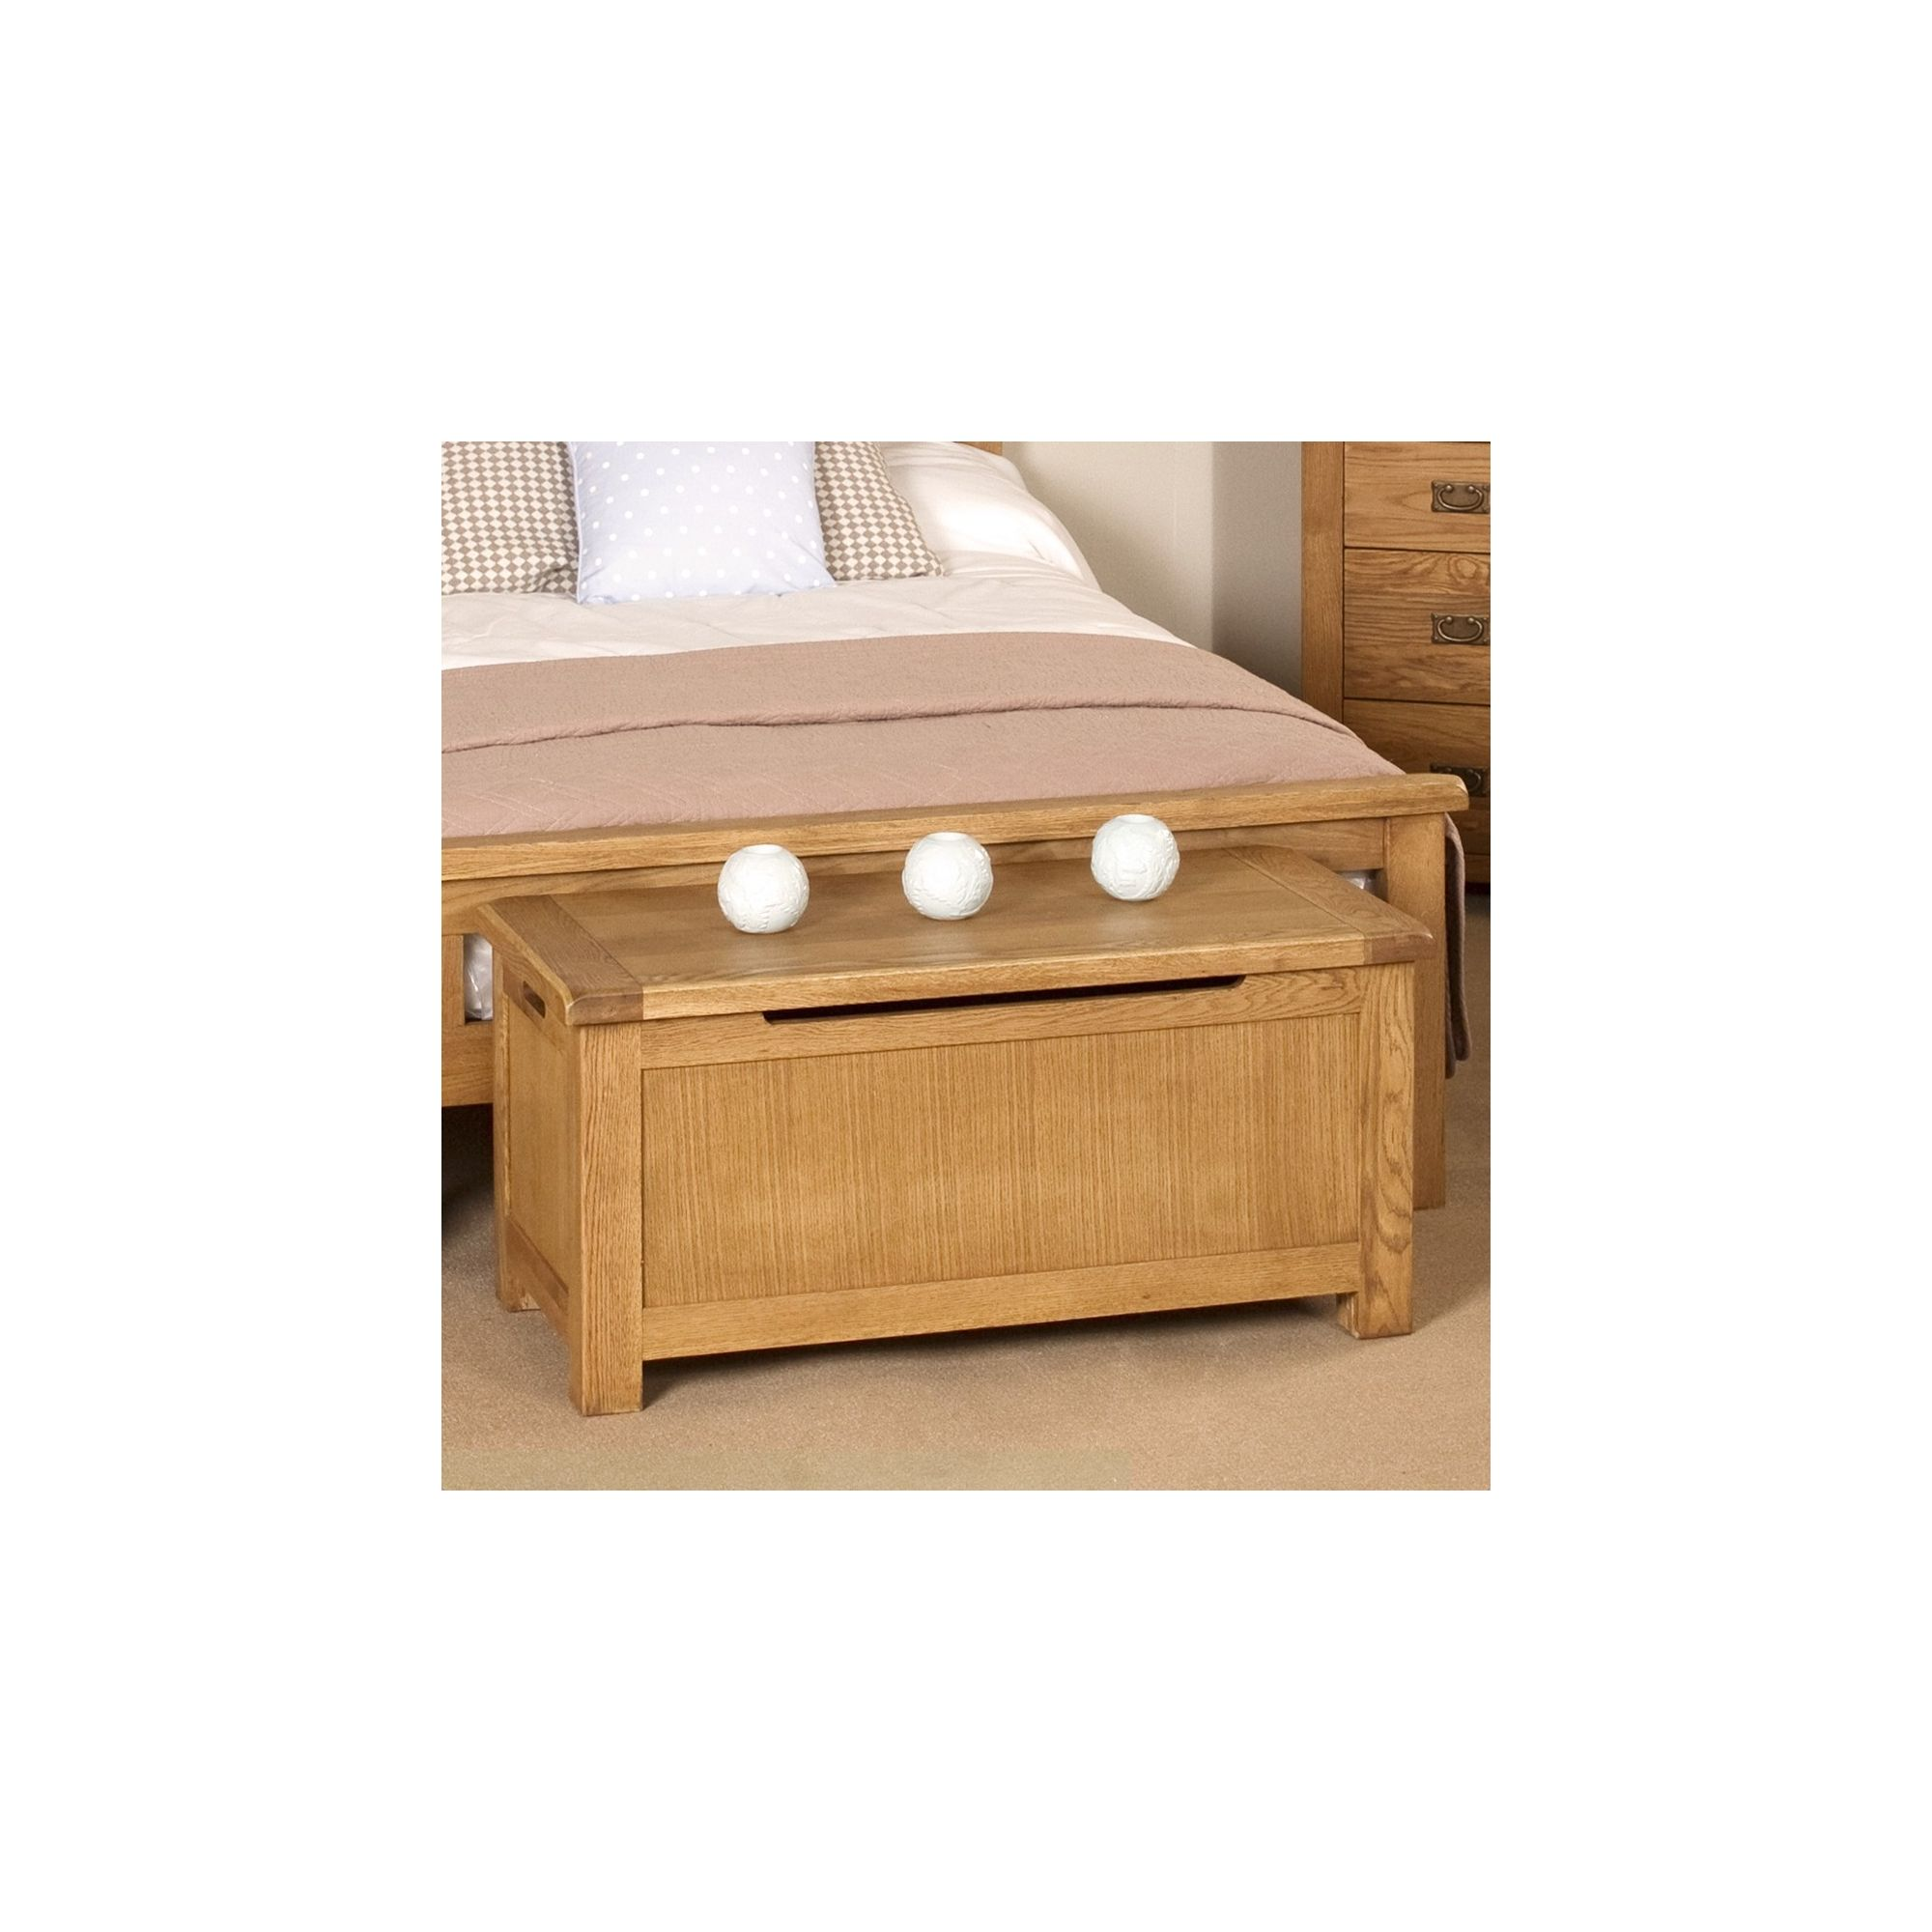 Elements Woodville Blanket Box at Tesco Direct